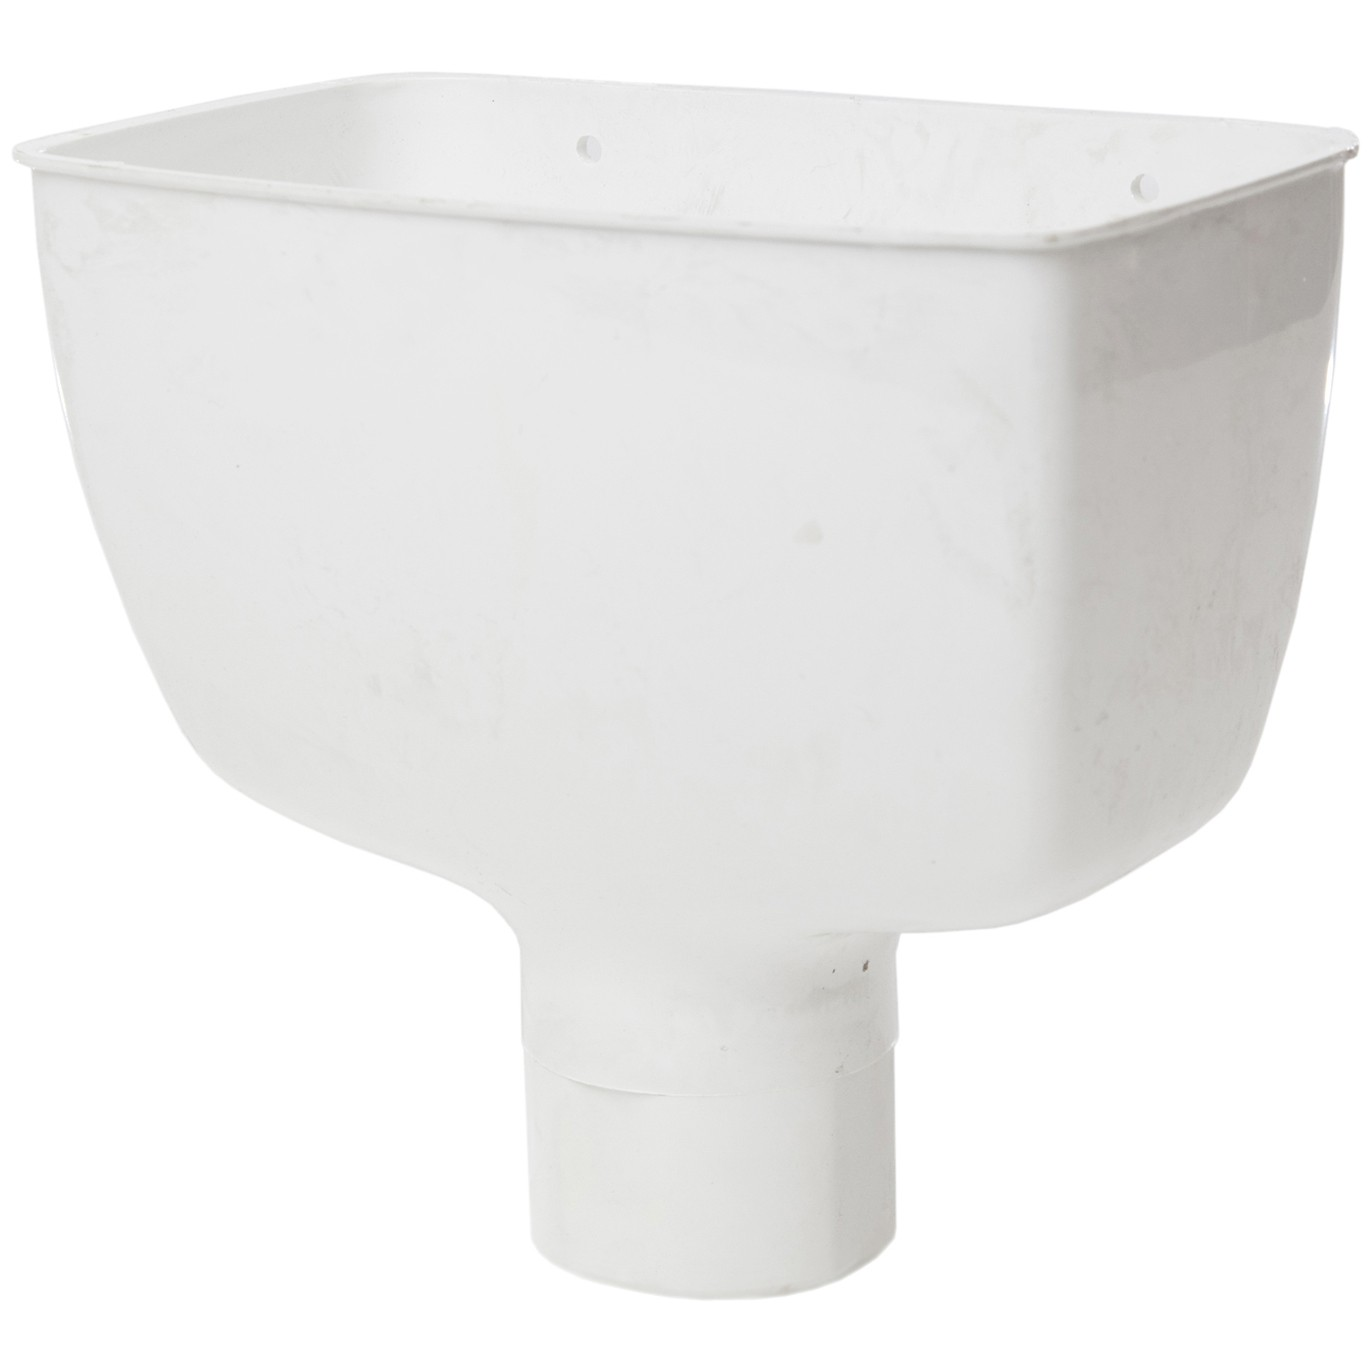 Polypipe 68mm Round Down Pipe Hopper Head - White